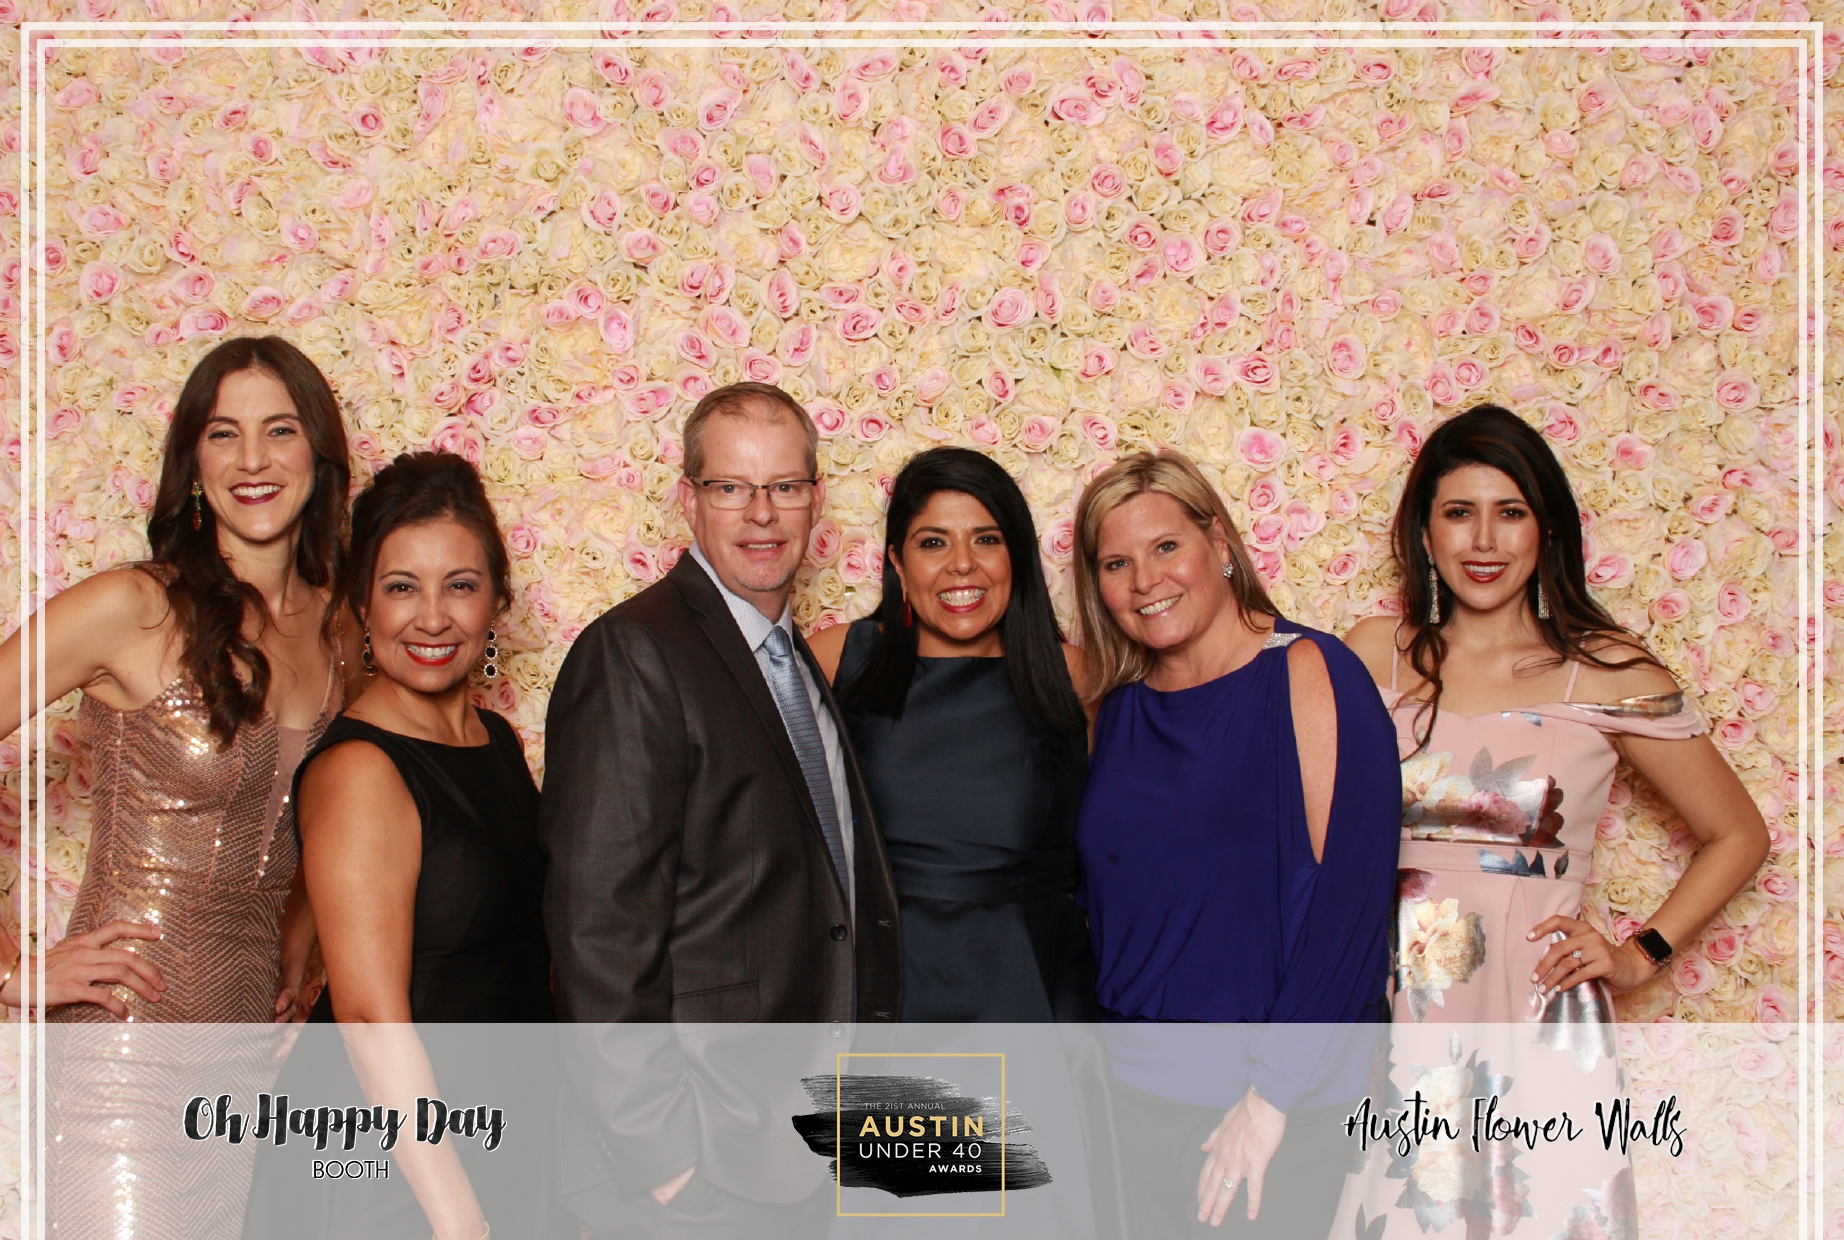 Oh Happy Day Booth - Austin Under 40-187.jpg